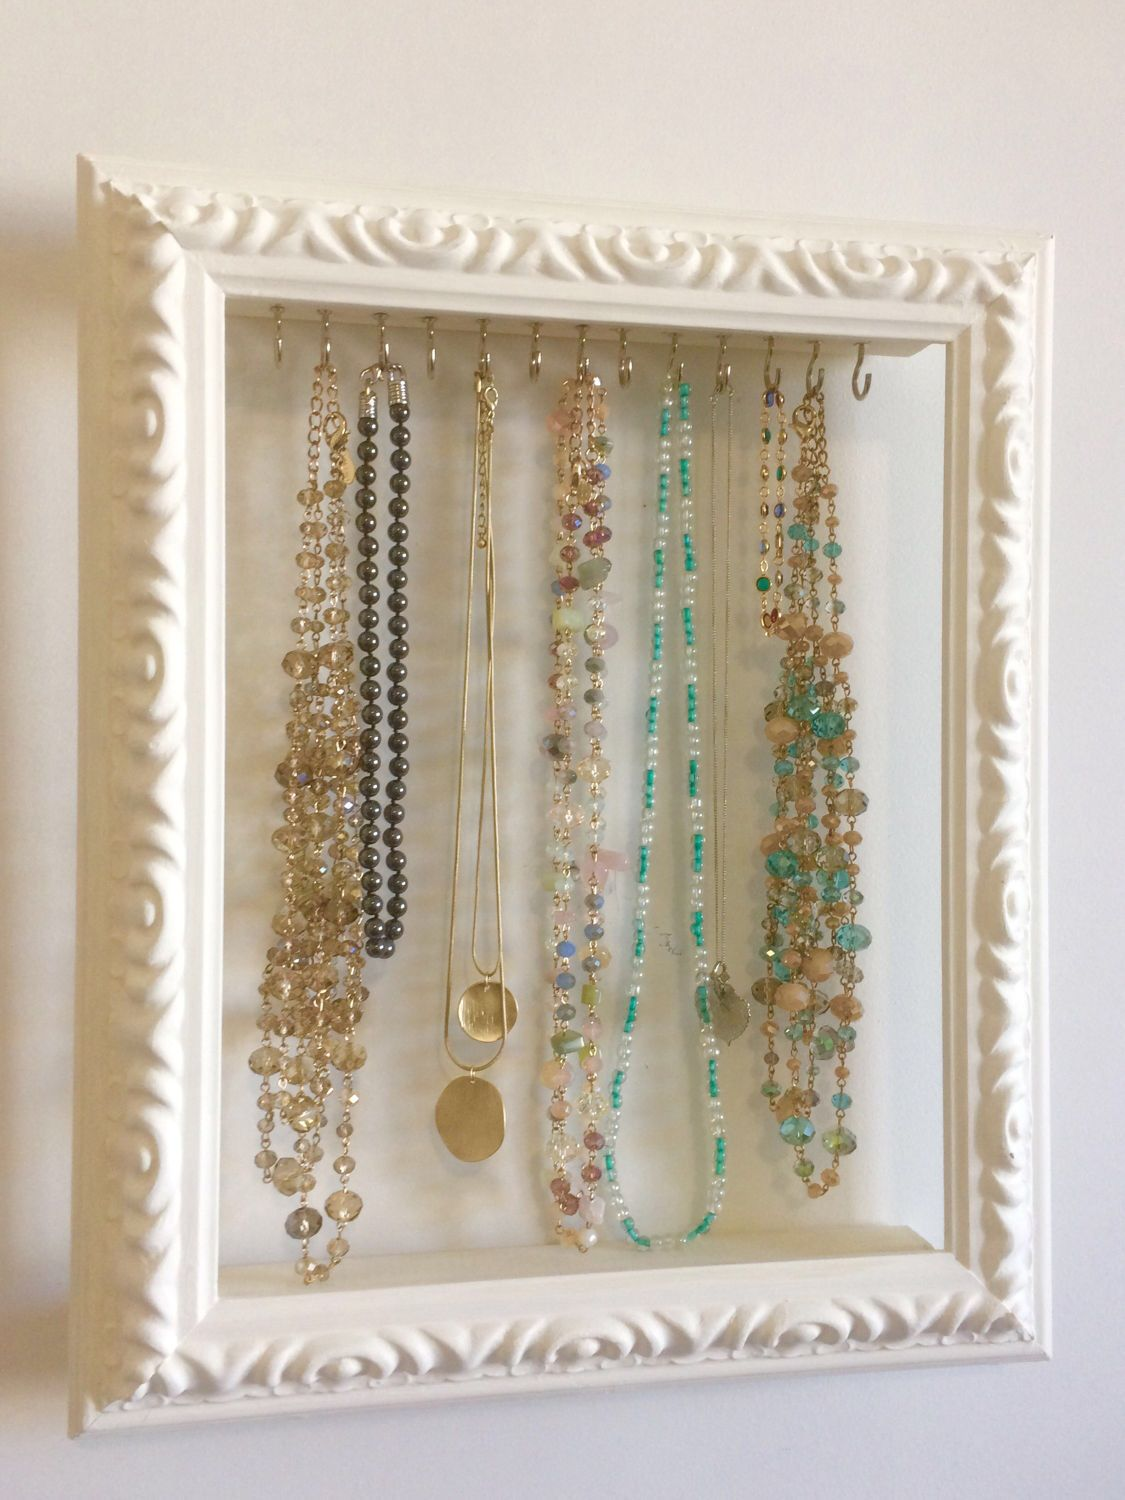 Jewelry Organizer Necklace Hanger Jewelry Holder Jewelry Display